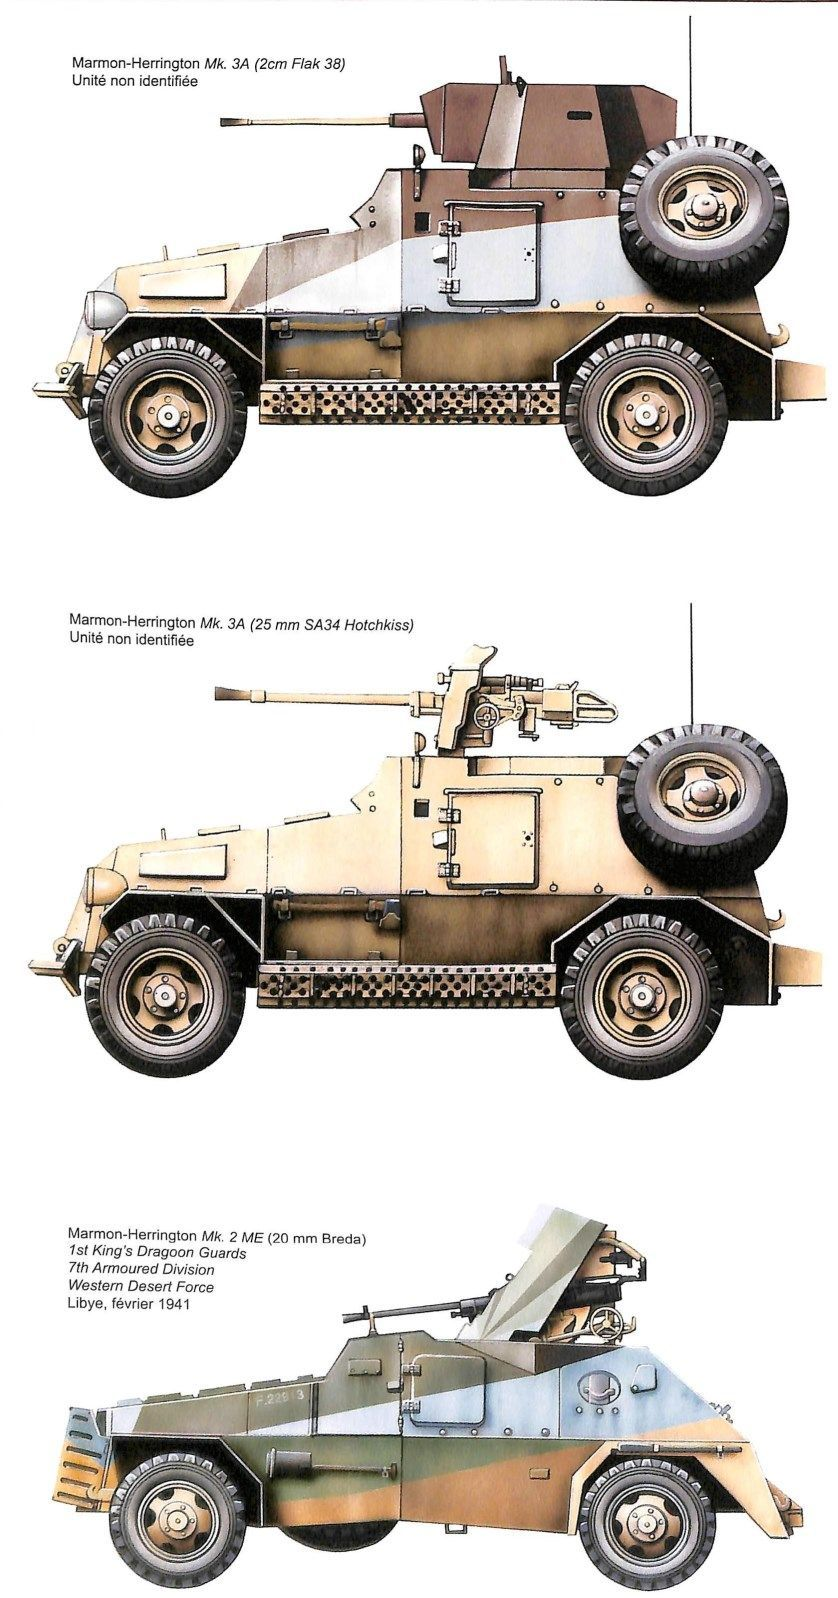 Afv 兵器や戦争 12ページ Afv兵器や戦争12ページ Cars Modified Military Vehicles Armored Vehicles Army Vehicles